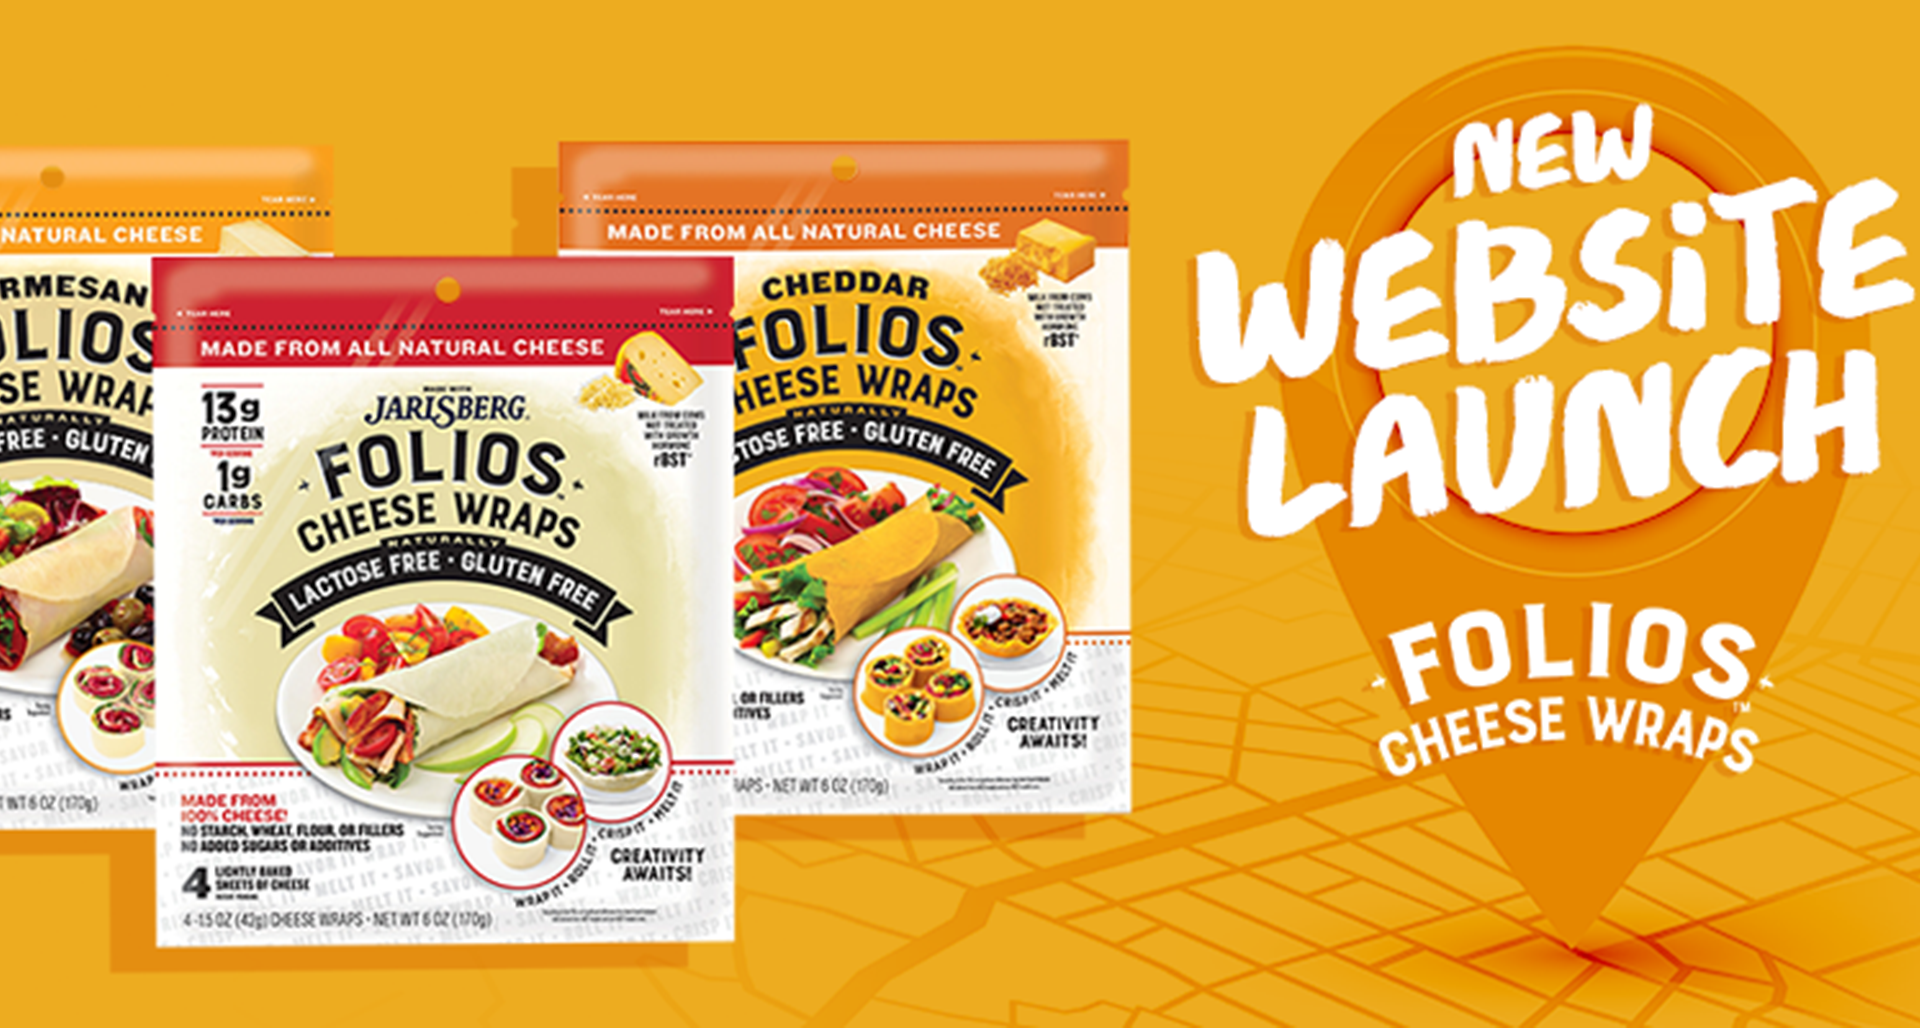 Folios™ Cheese Wraps Launches a New Website with a Major New Feature